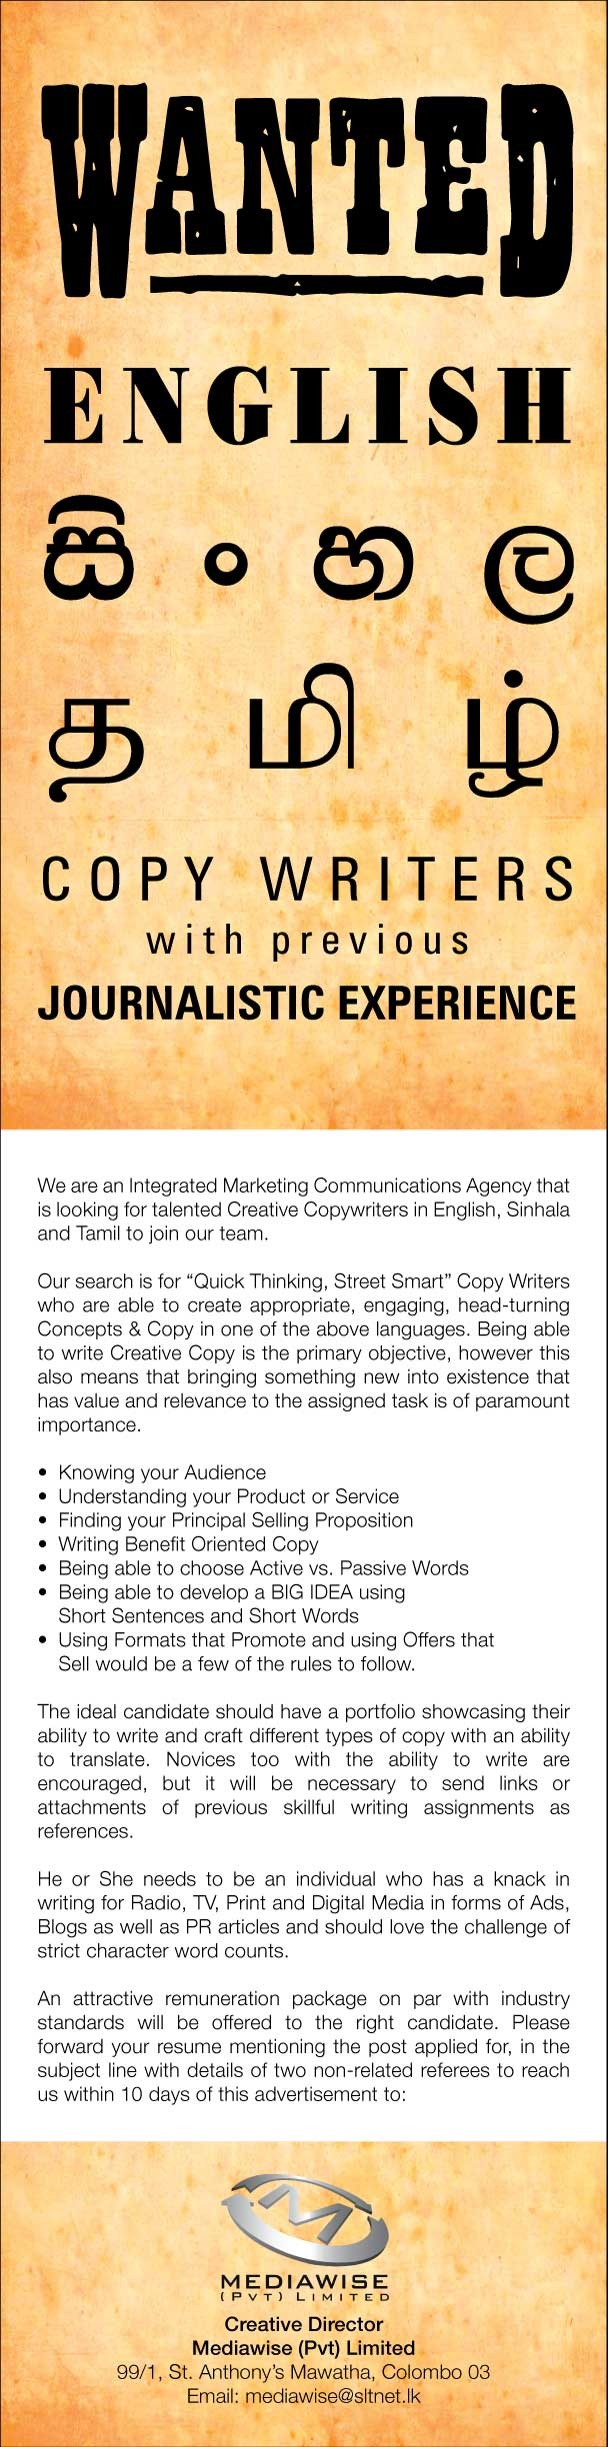 english sinhala tamil copy writers job vacancy in sri lanka street smart copy writers who are able to create appropriate engaging head turning concepts copy in one of the above languages